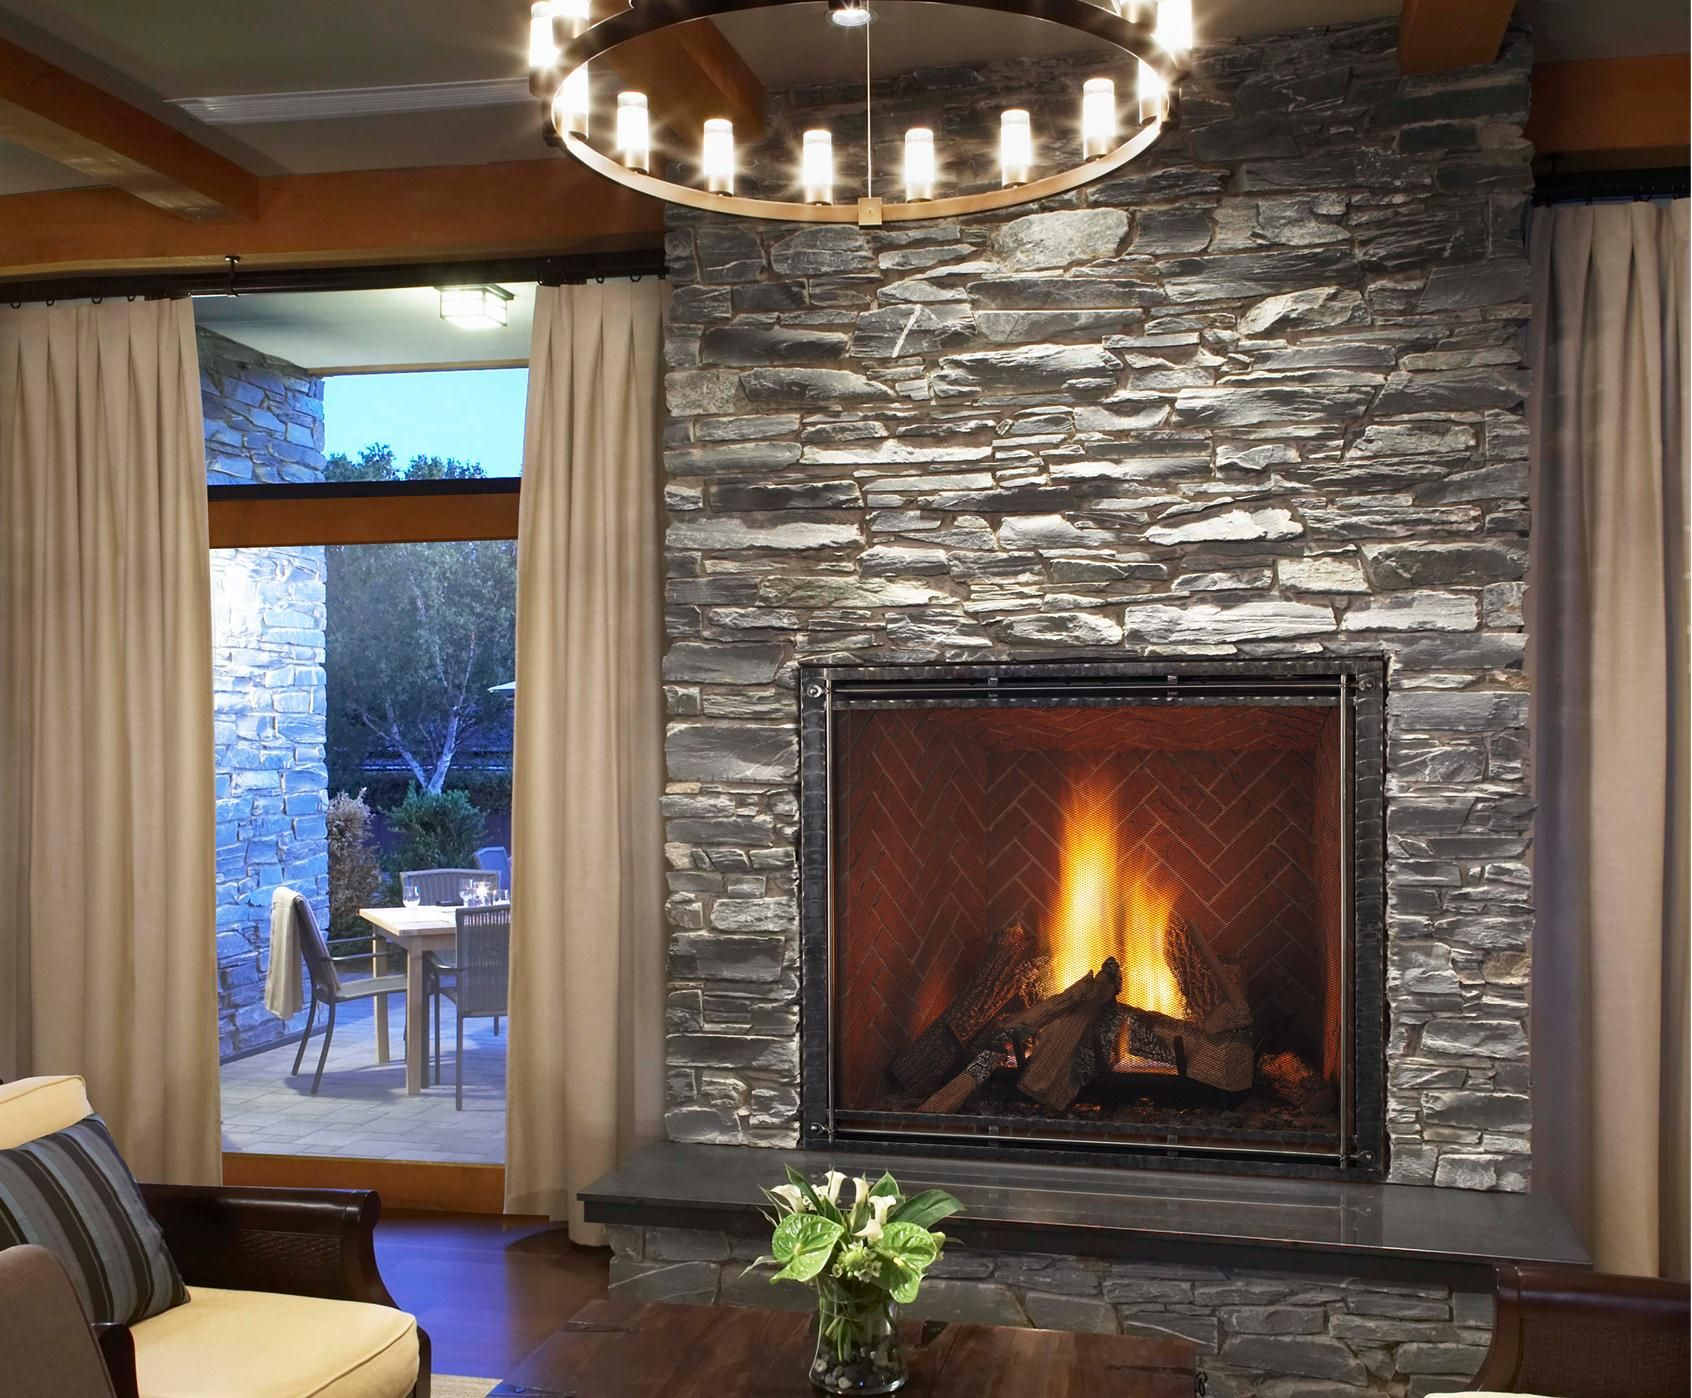 modern interior design and with the fireplace and the